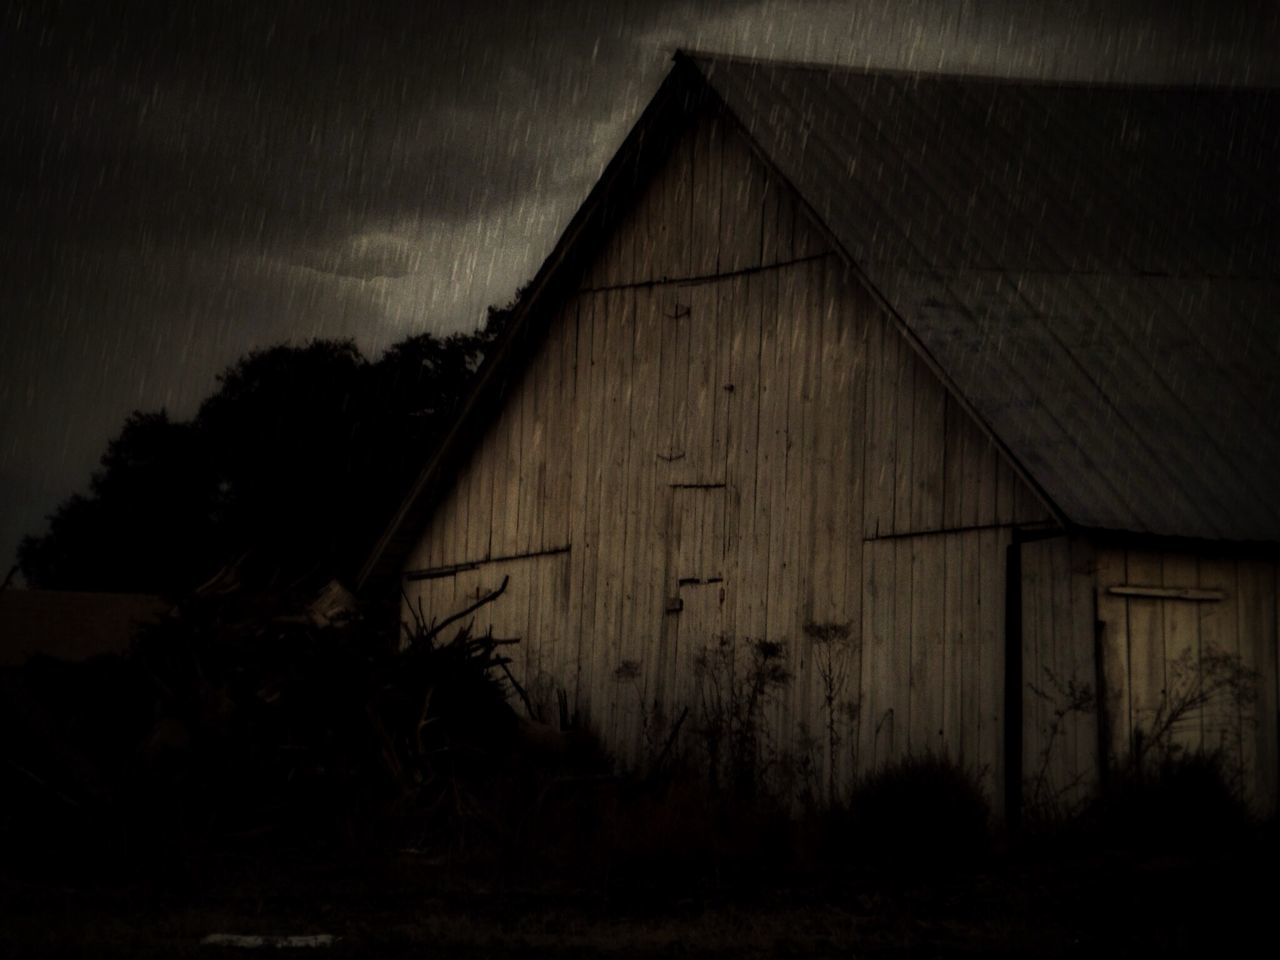 built structure, architecture, building exterior, no people, barn, outdoors, day, sky, tree, nature